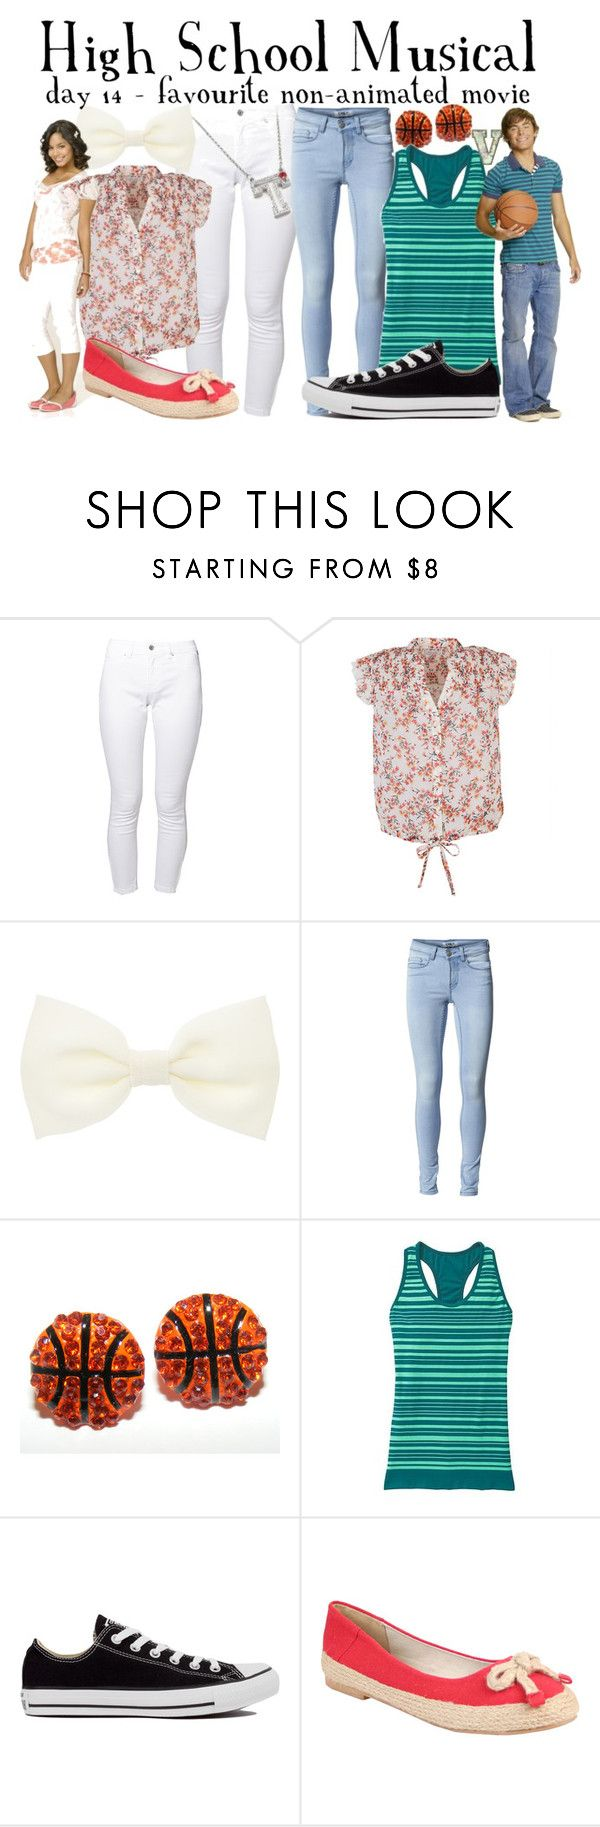 """30 Day Disney; 14 - Troy and Gabriella (High School Musical)"" by fabfandoms ❤ liked on Polyvore featuring Brooklyn Supply Co., dELiA*s, Accessorize, ONLY, Athleta, Converse, Disney, Nomad, women's clothing and women"